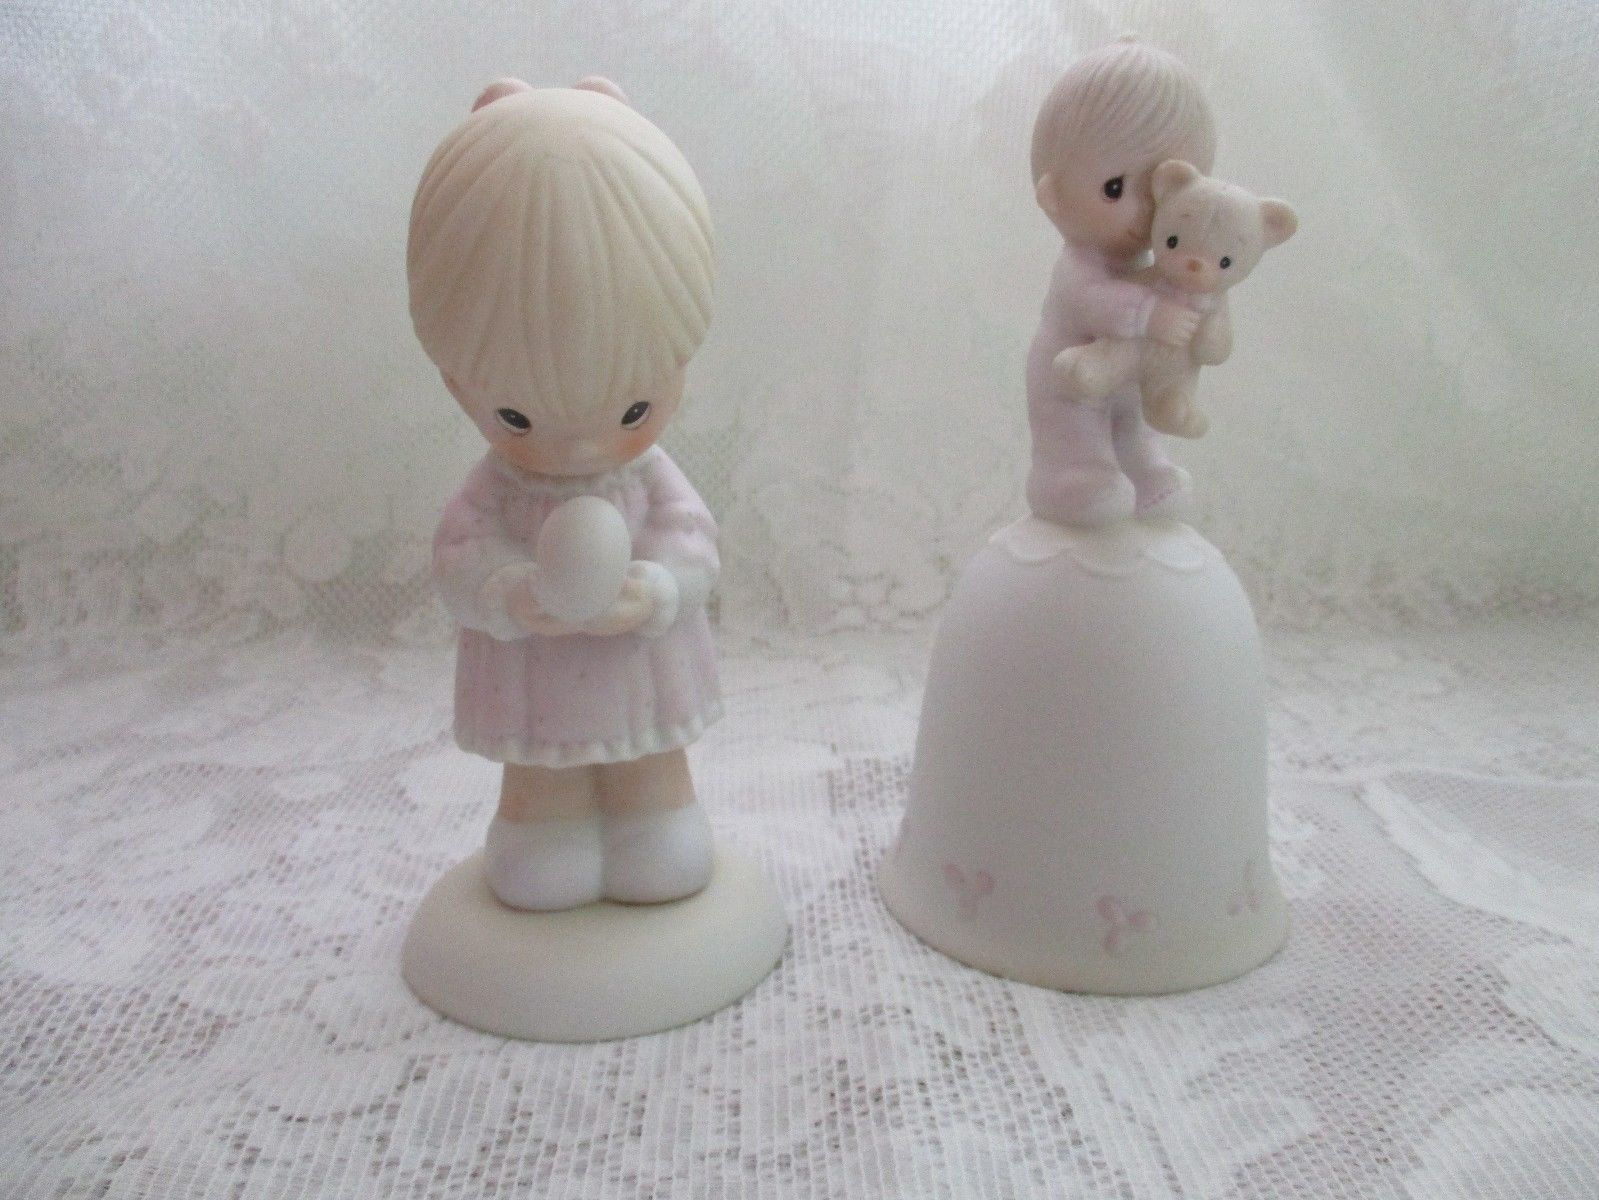 Lot of 2 Precious Moments Figurines - $28.99